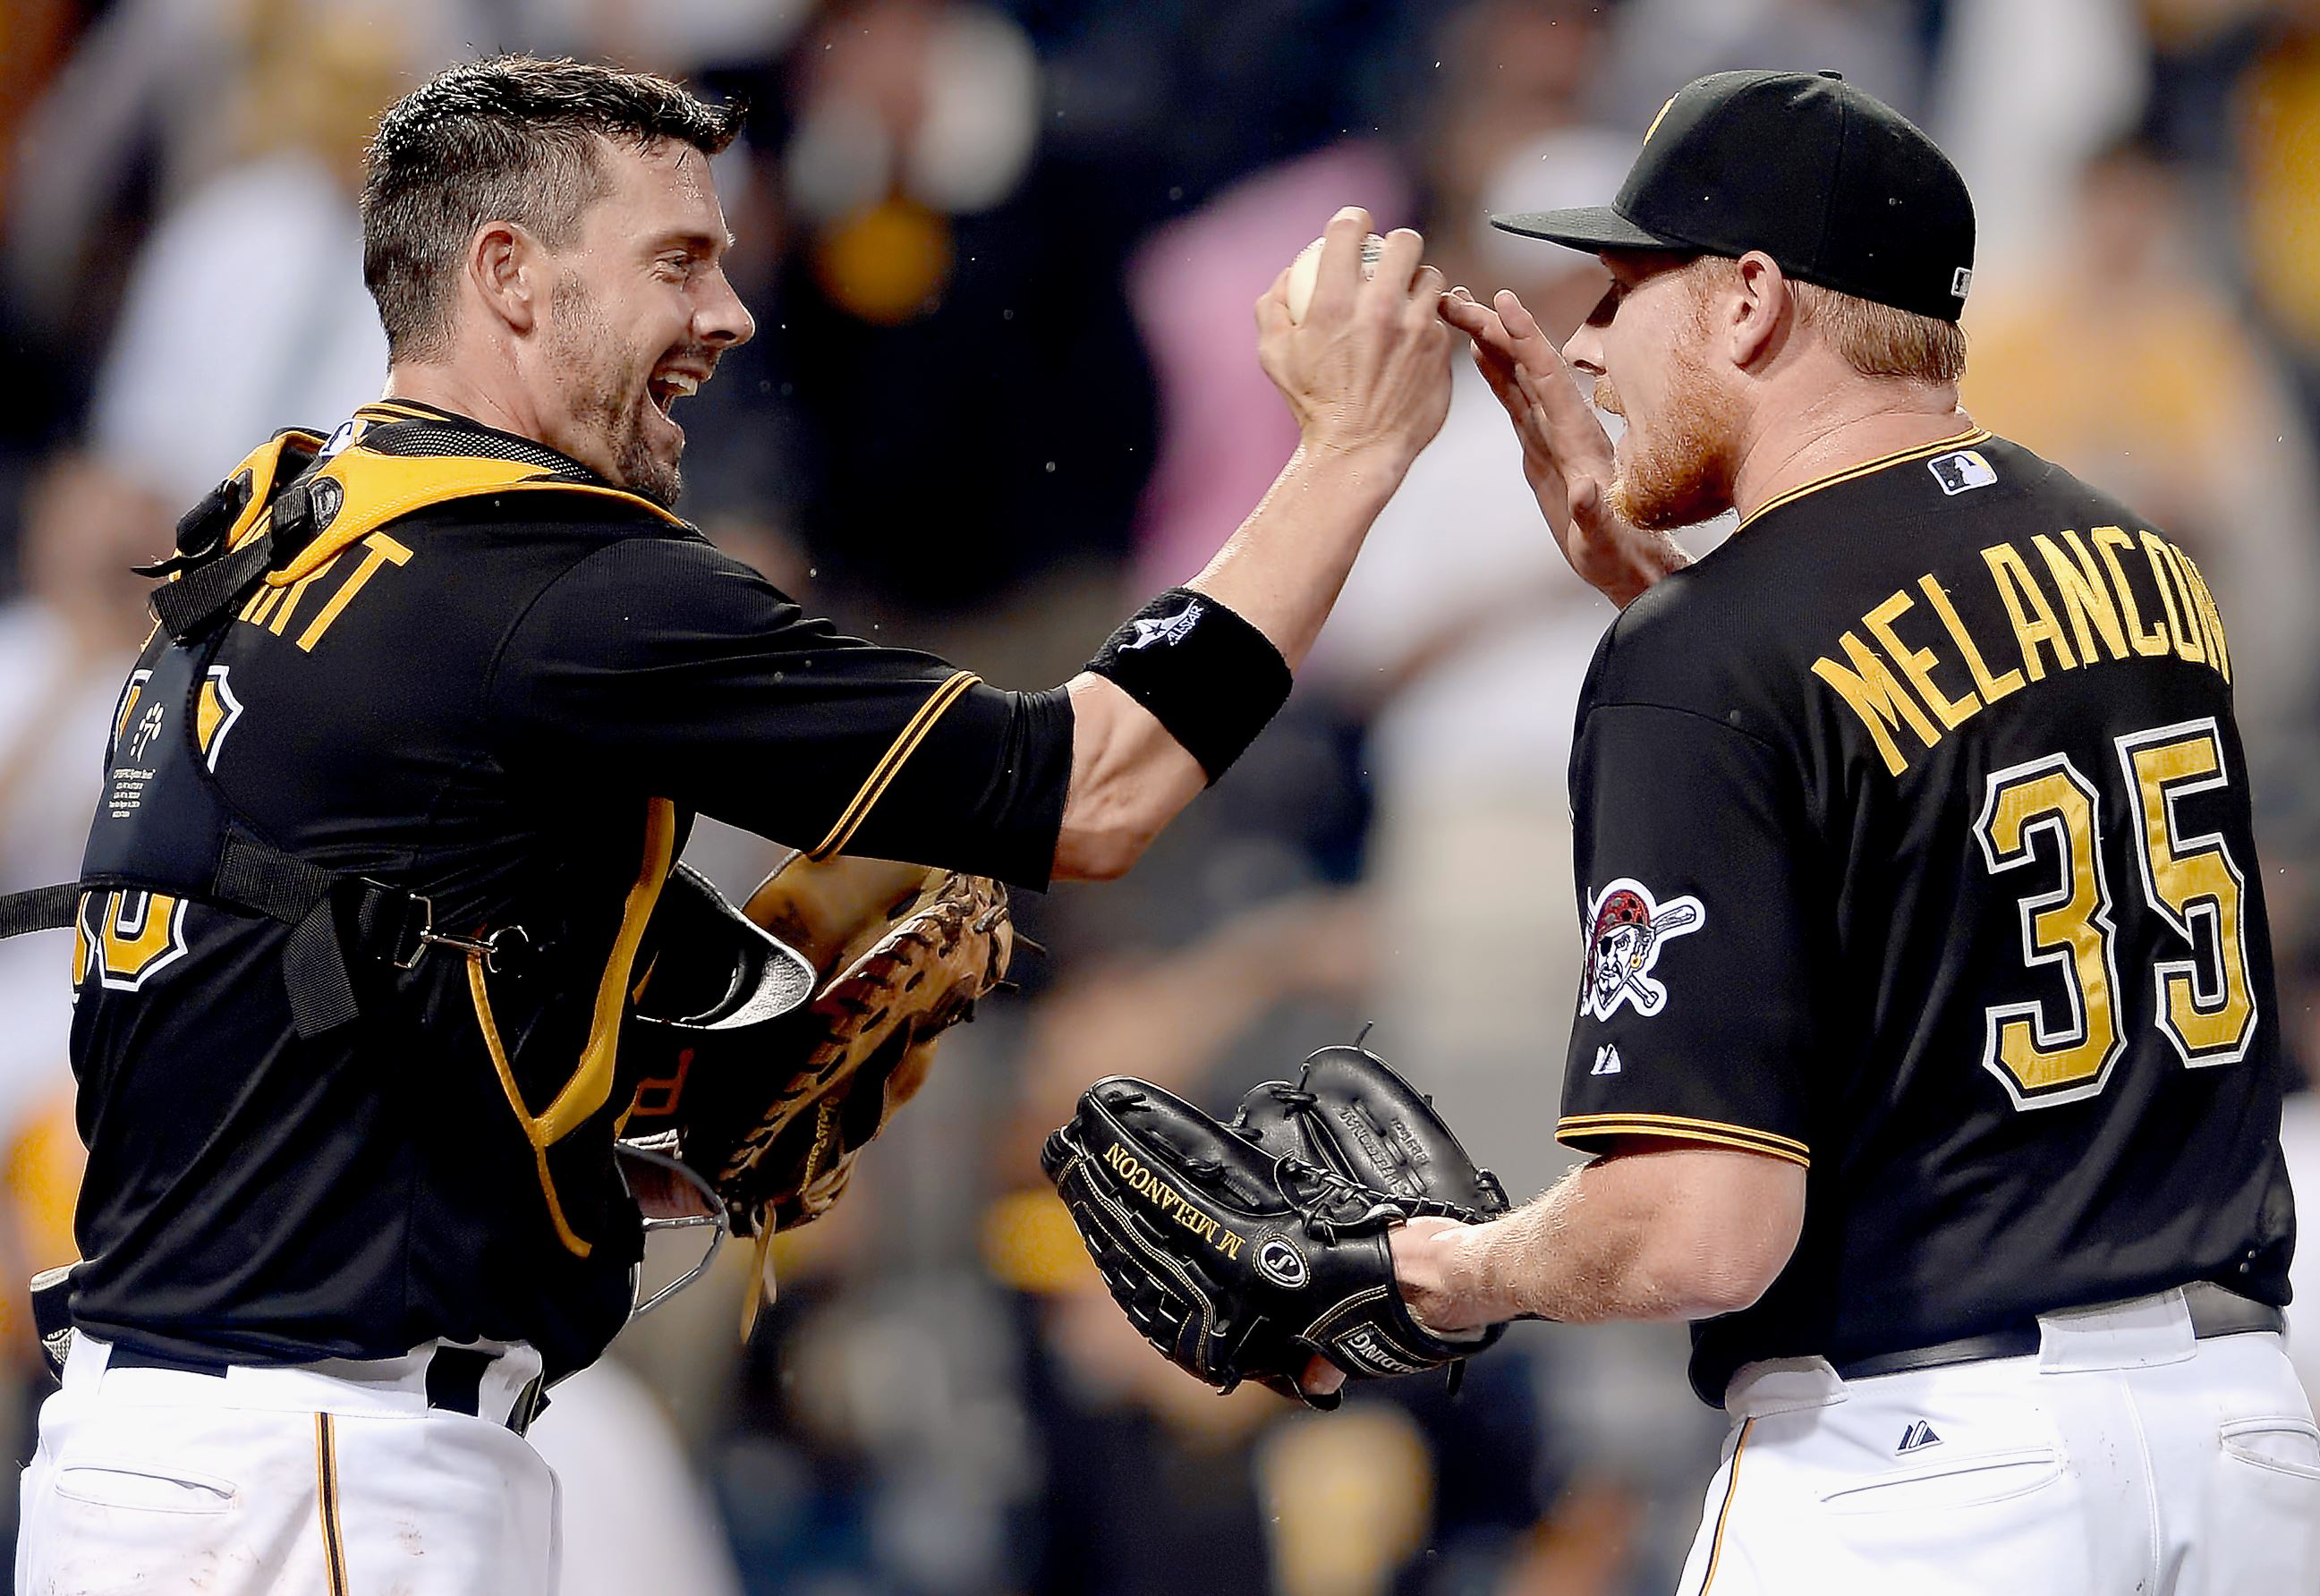 Reports: Pirates, catcher Chris Stewart agree on two-year contract extension